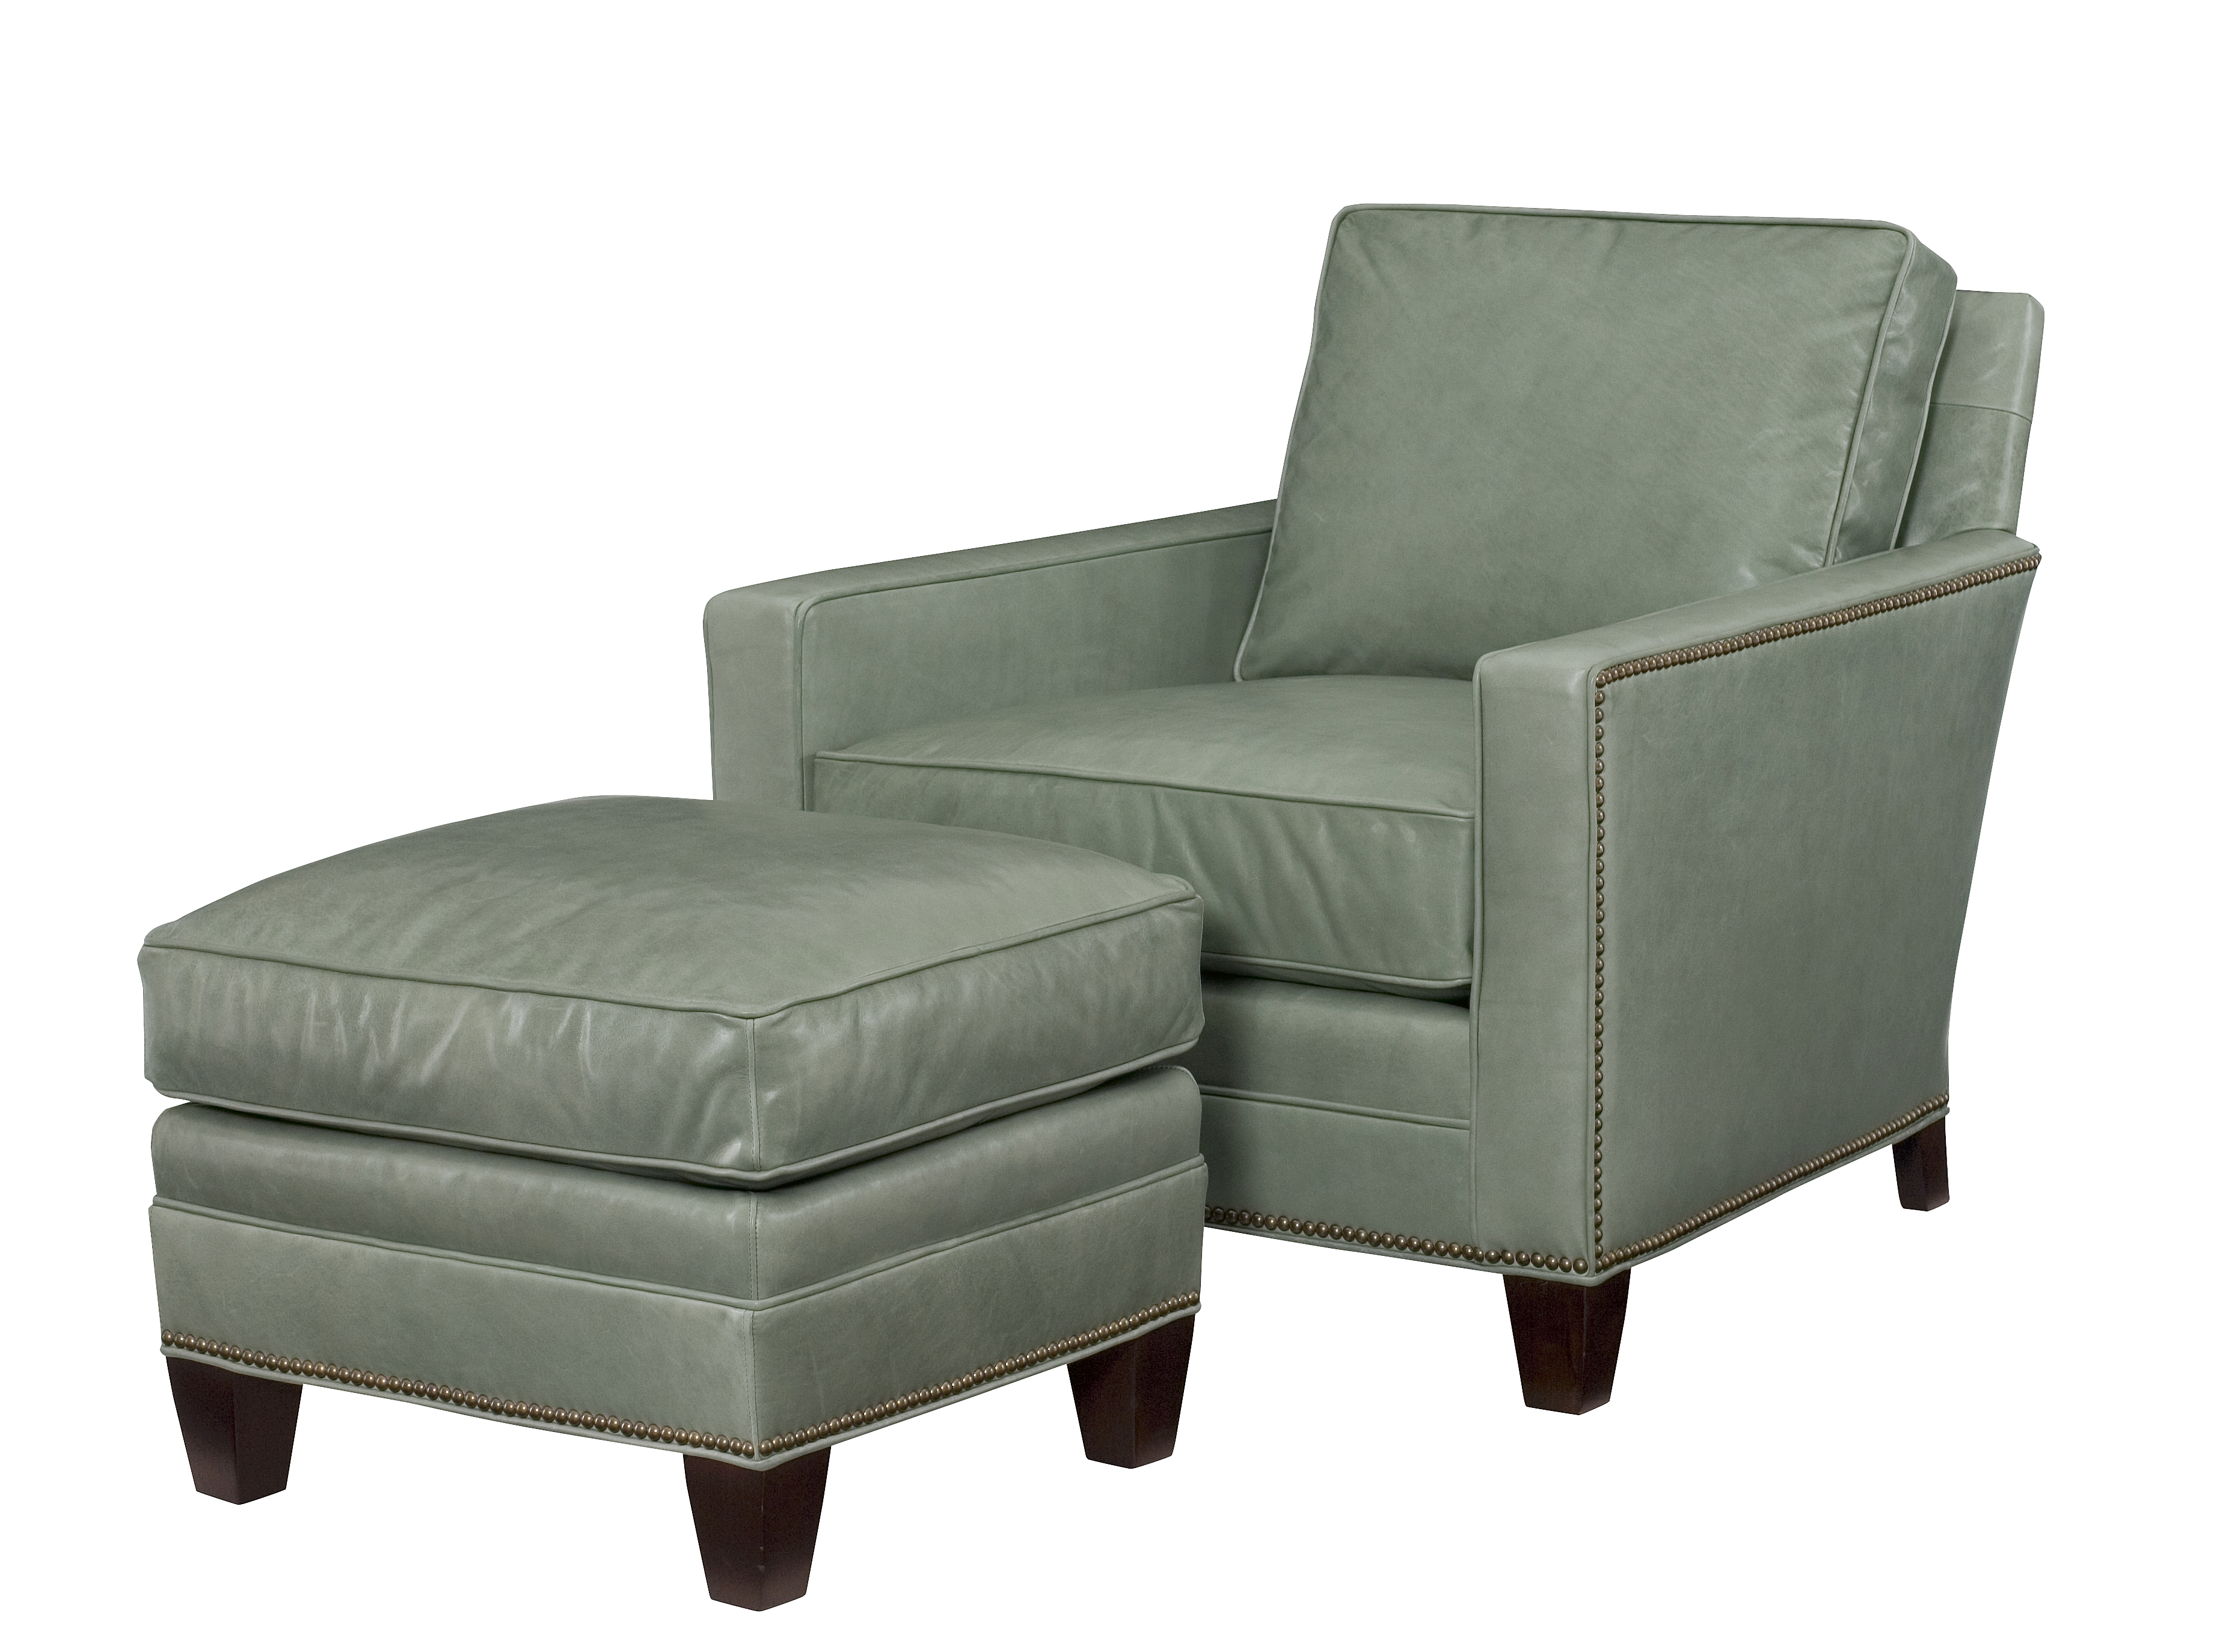 Wesley Hall Furniture Hickory NC PRODUCT PAGE L1953 CHAIR